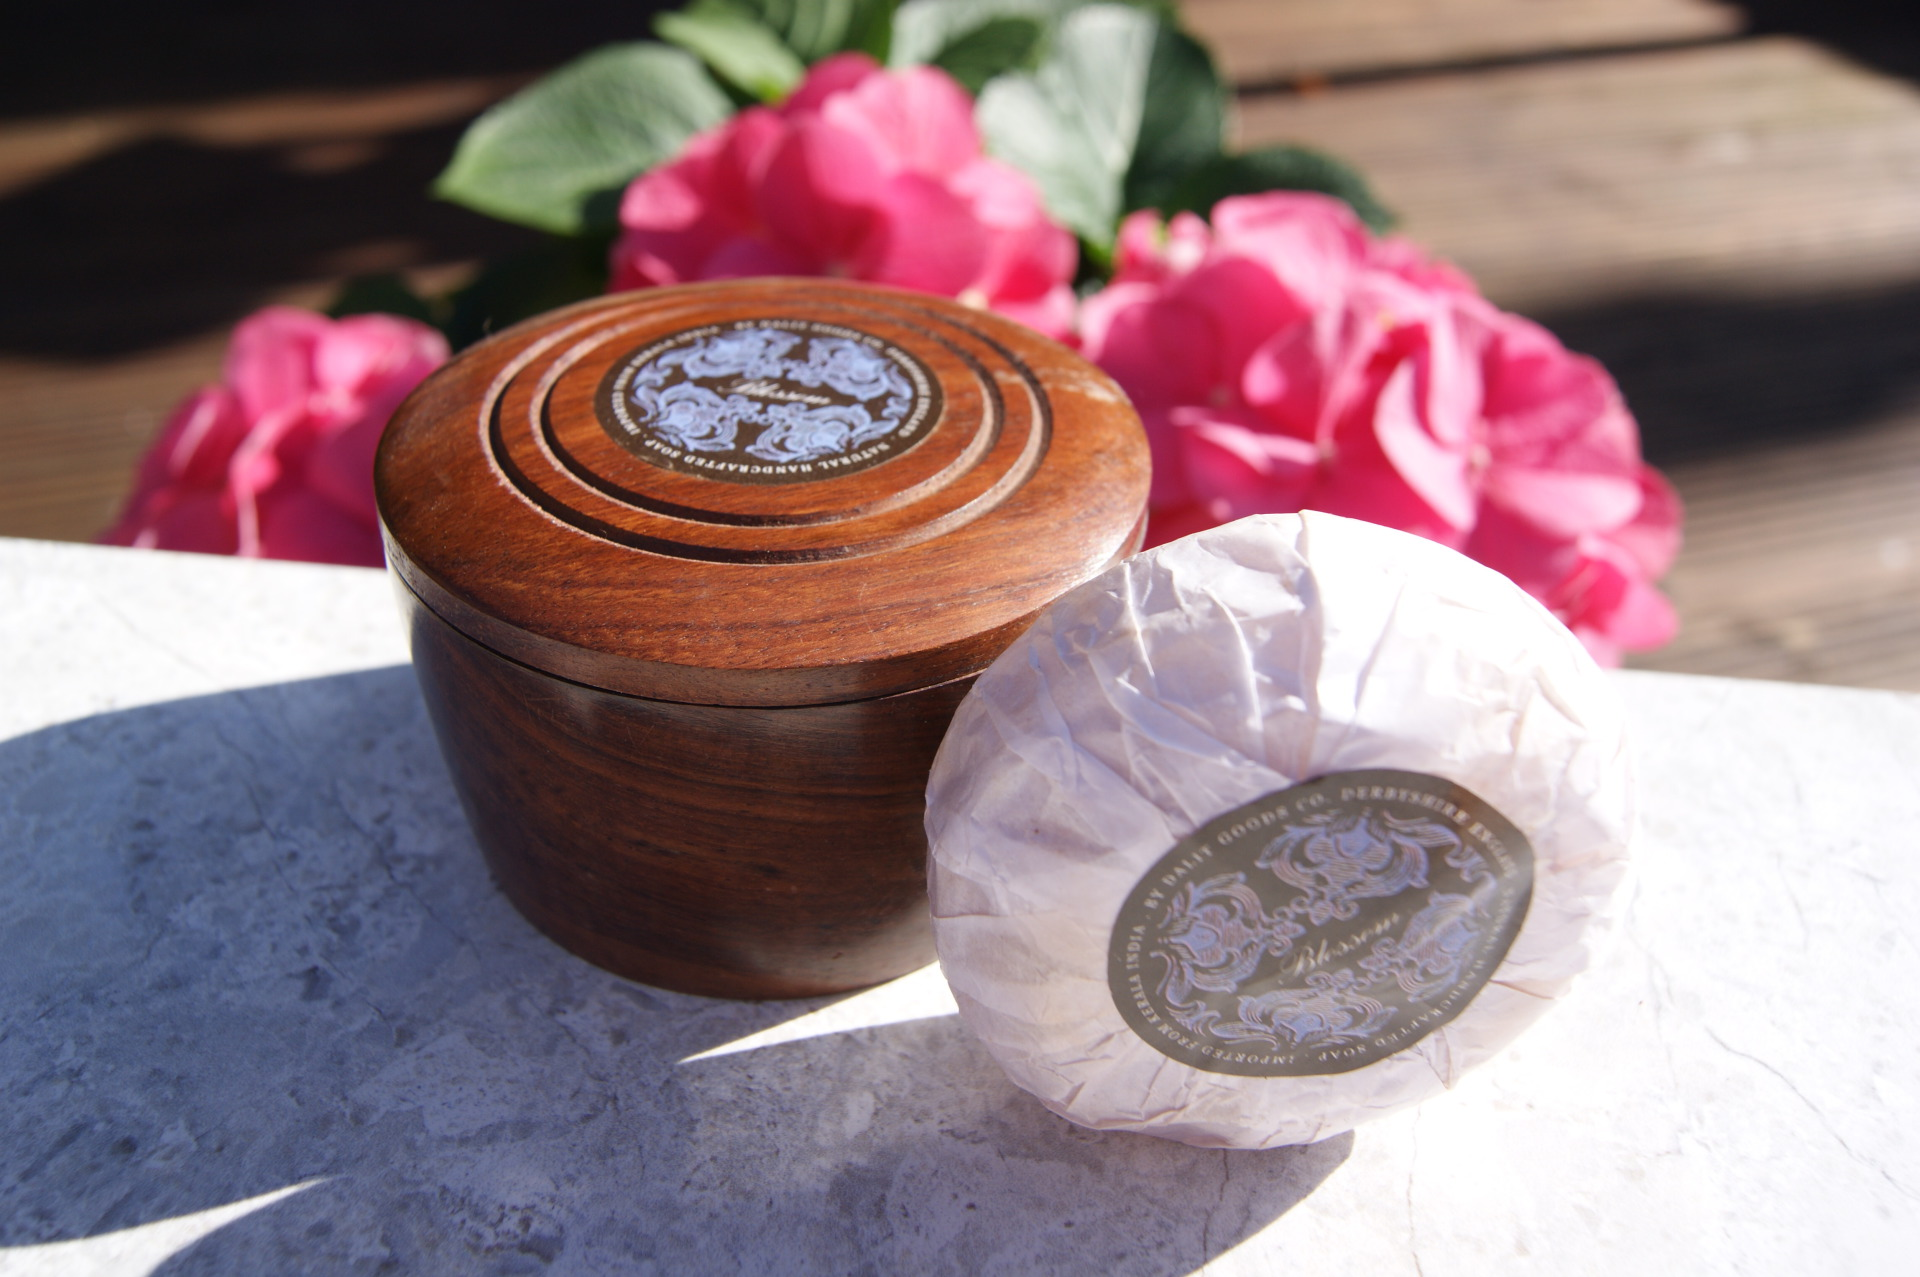 Dalit Goods - Blossom Scented Soap in a Rosewood Box